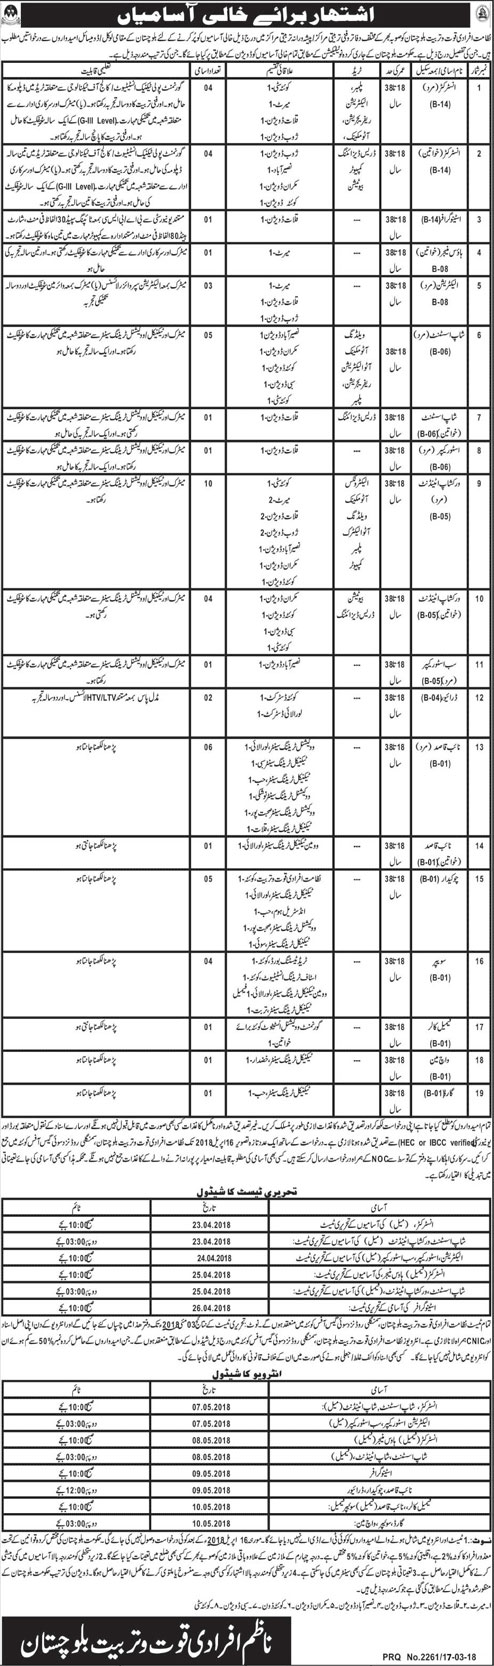 Jobs in Govt of Balochistan Department 19 March 2018